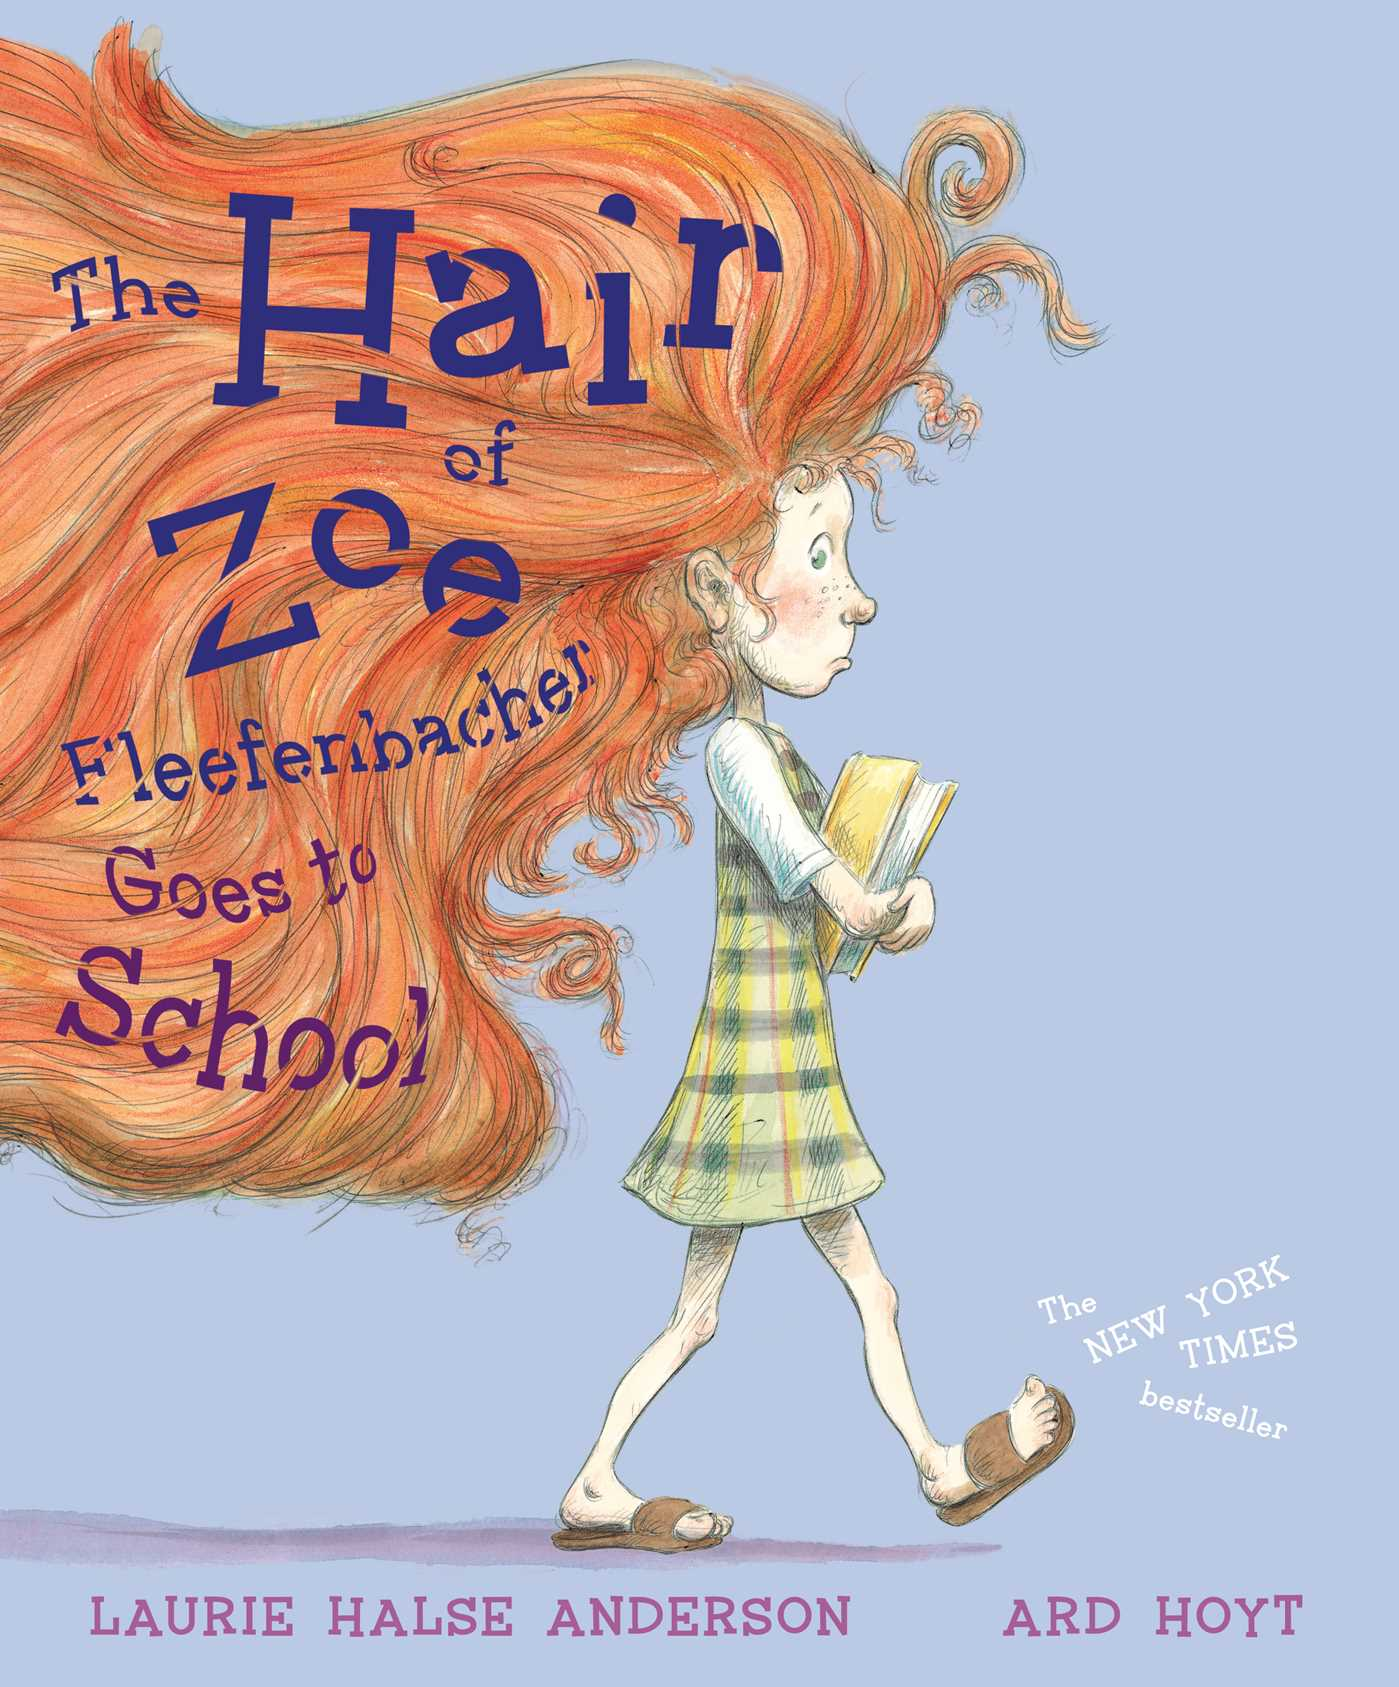 The hair of zoe fleefenbacher goes to school 9781442445093 hr